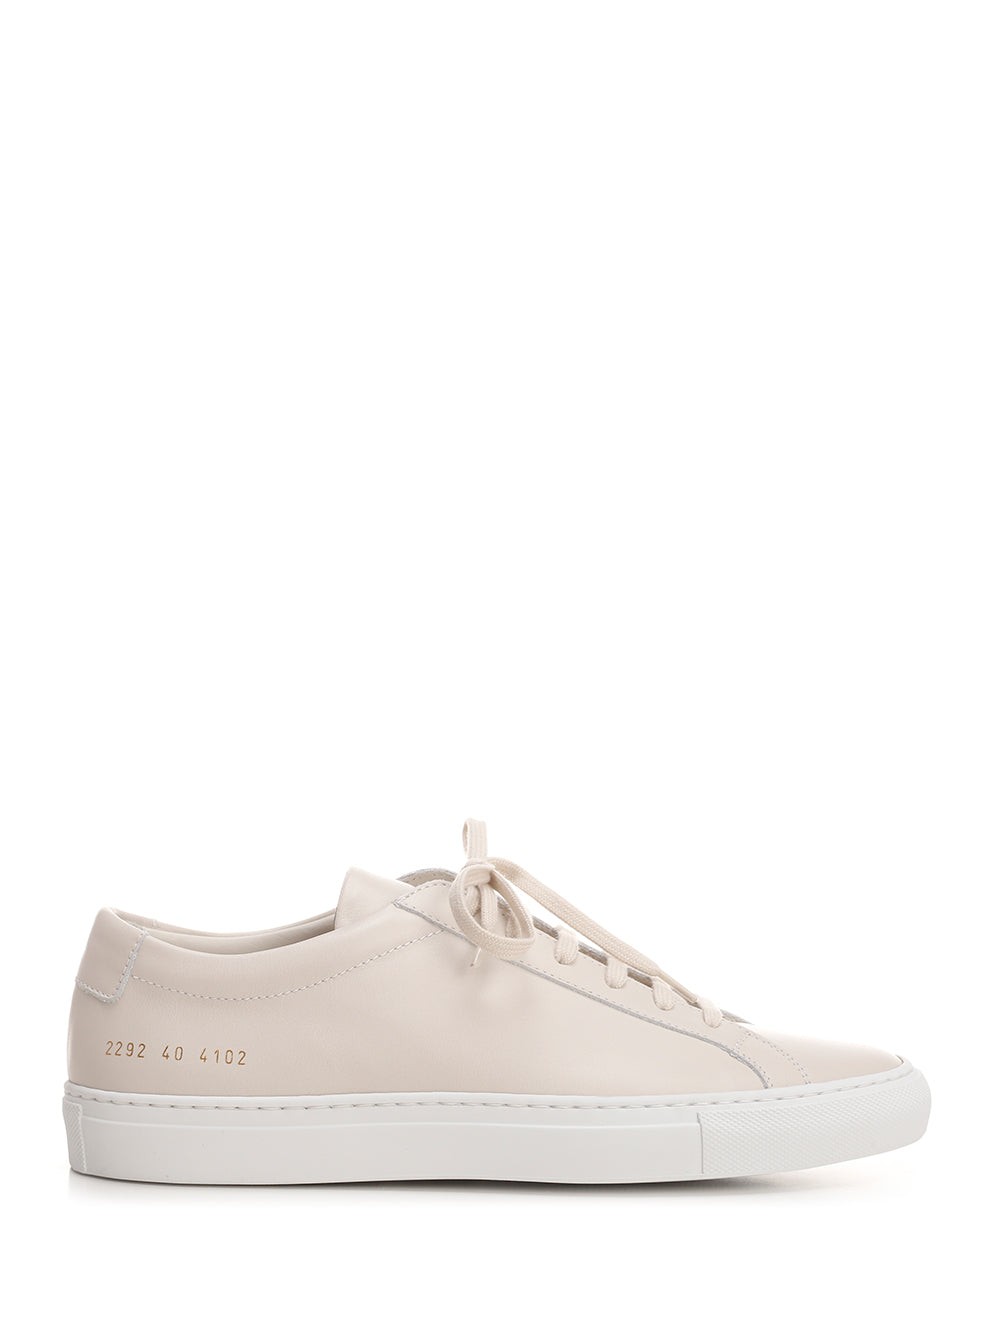 Common Projects Sneakers COMMON PROJECTS ACHILLES SNEAKERS